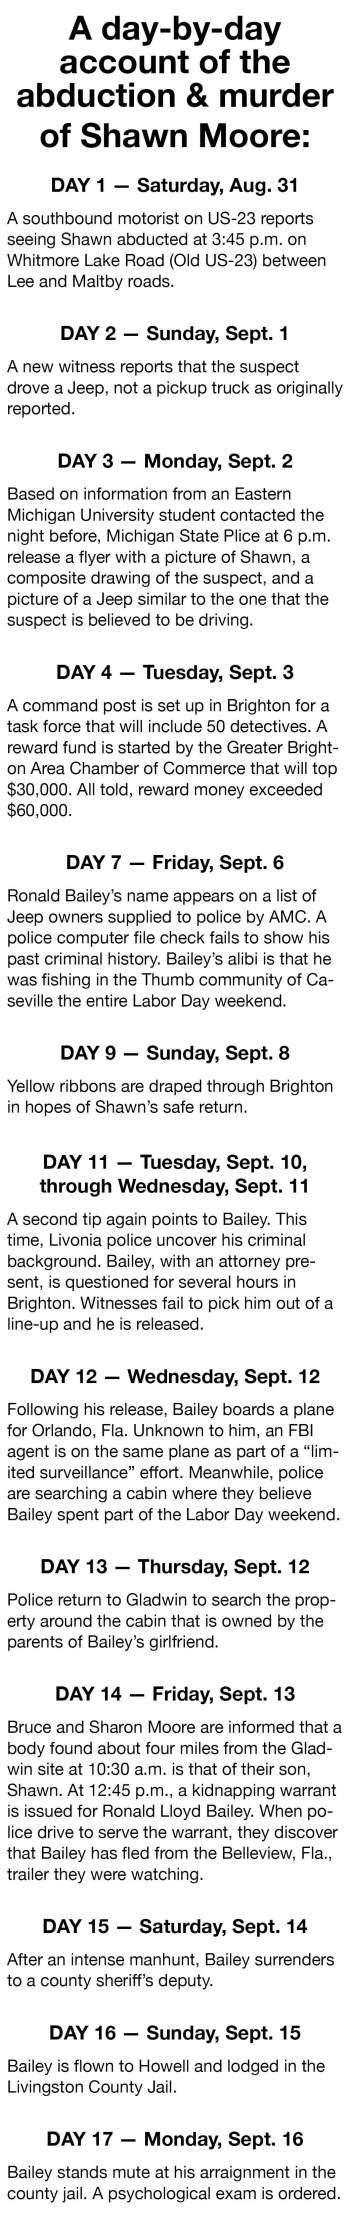 Shawn Moore Timeline